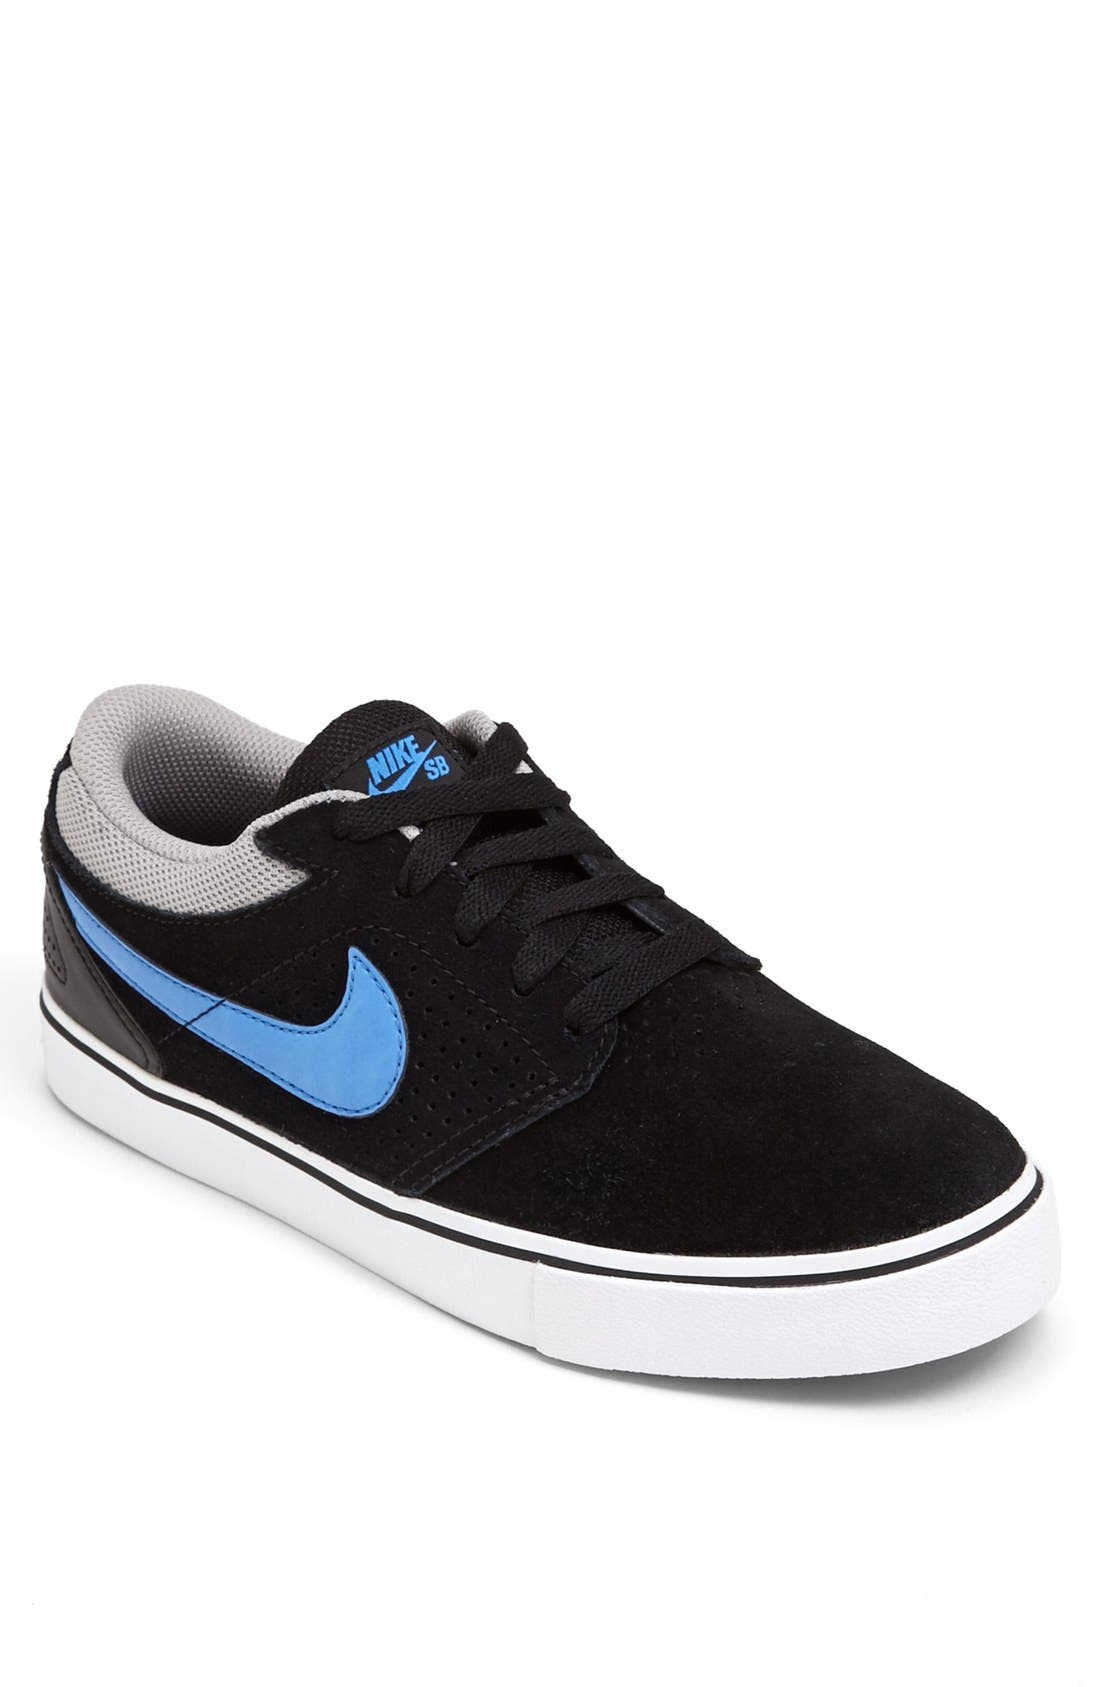 Main Image - Nike 'Paul Rodriguez 5 LR' Sneaker (Men)